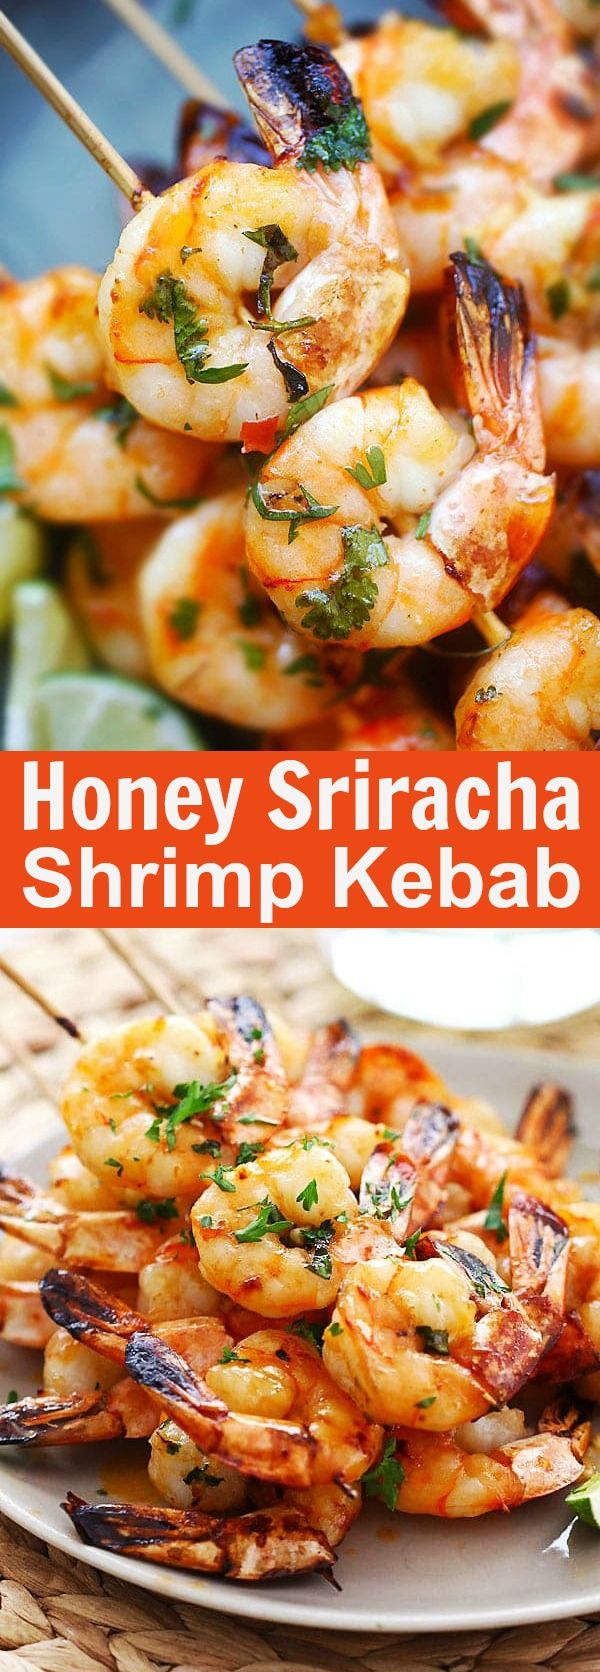 Honey Sriracha Shrimp Kebab – crazy delicious shrimp kebab with honey Sriracha butter. Thread shrimp on skewers and grill, so easy | rasamalaysia.com